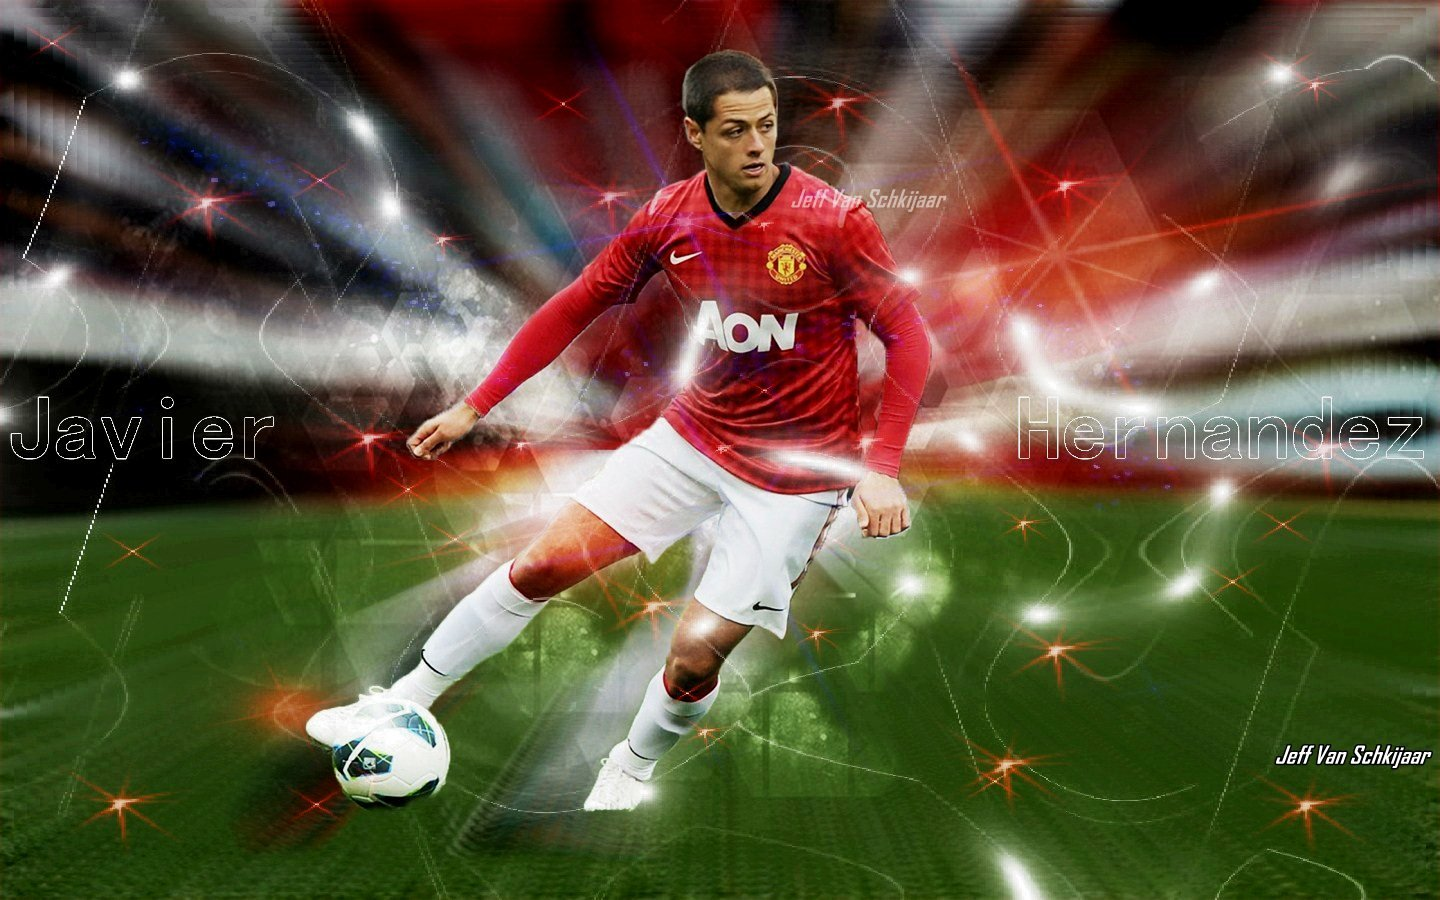 Javier Hernandez Chicharito Hd Wallpapers